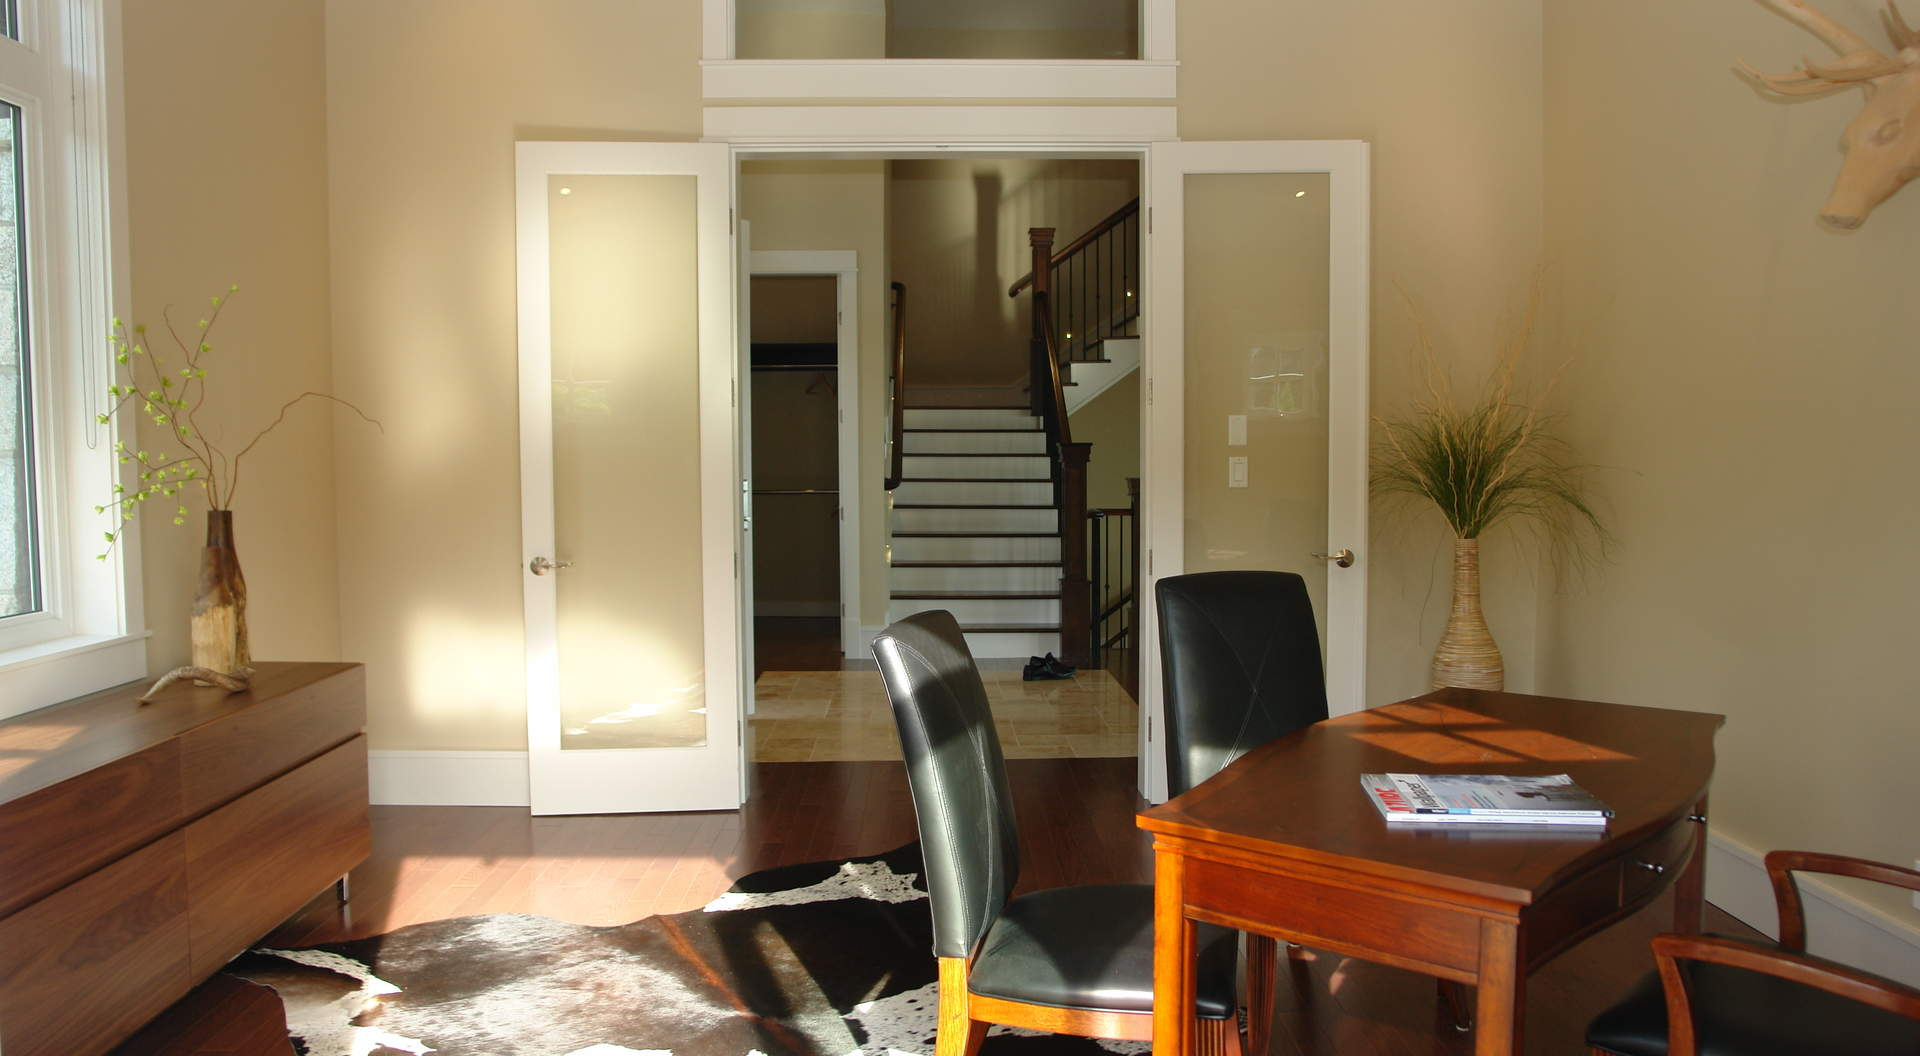 Private Office with French Doors to a Private Courtyard Patio